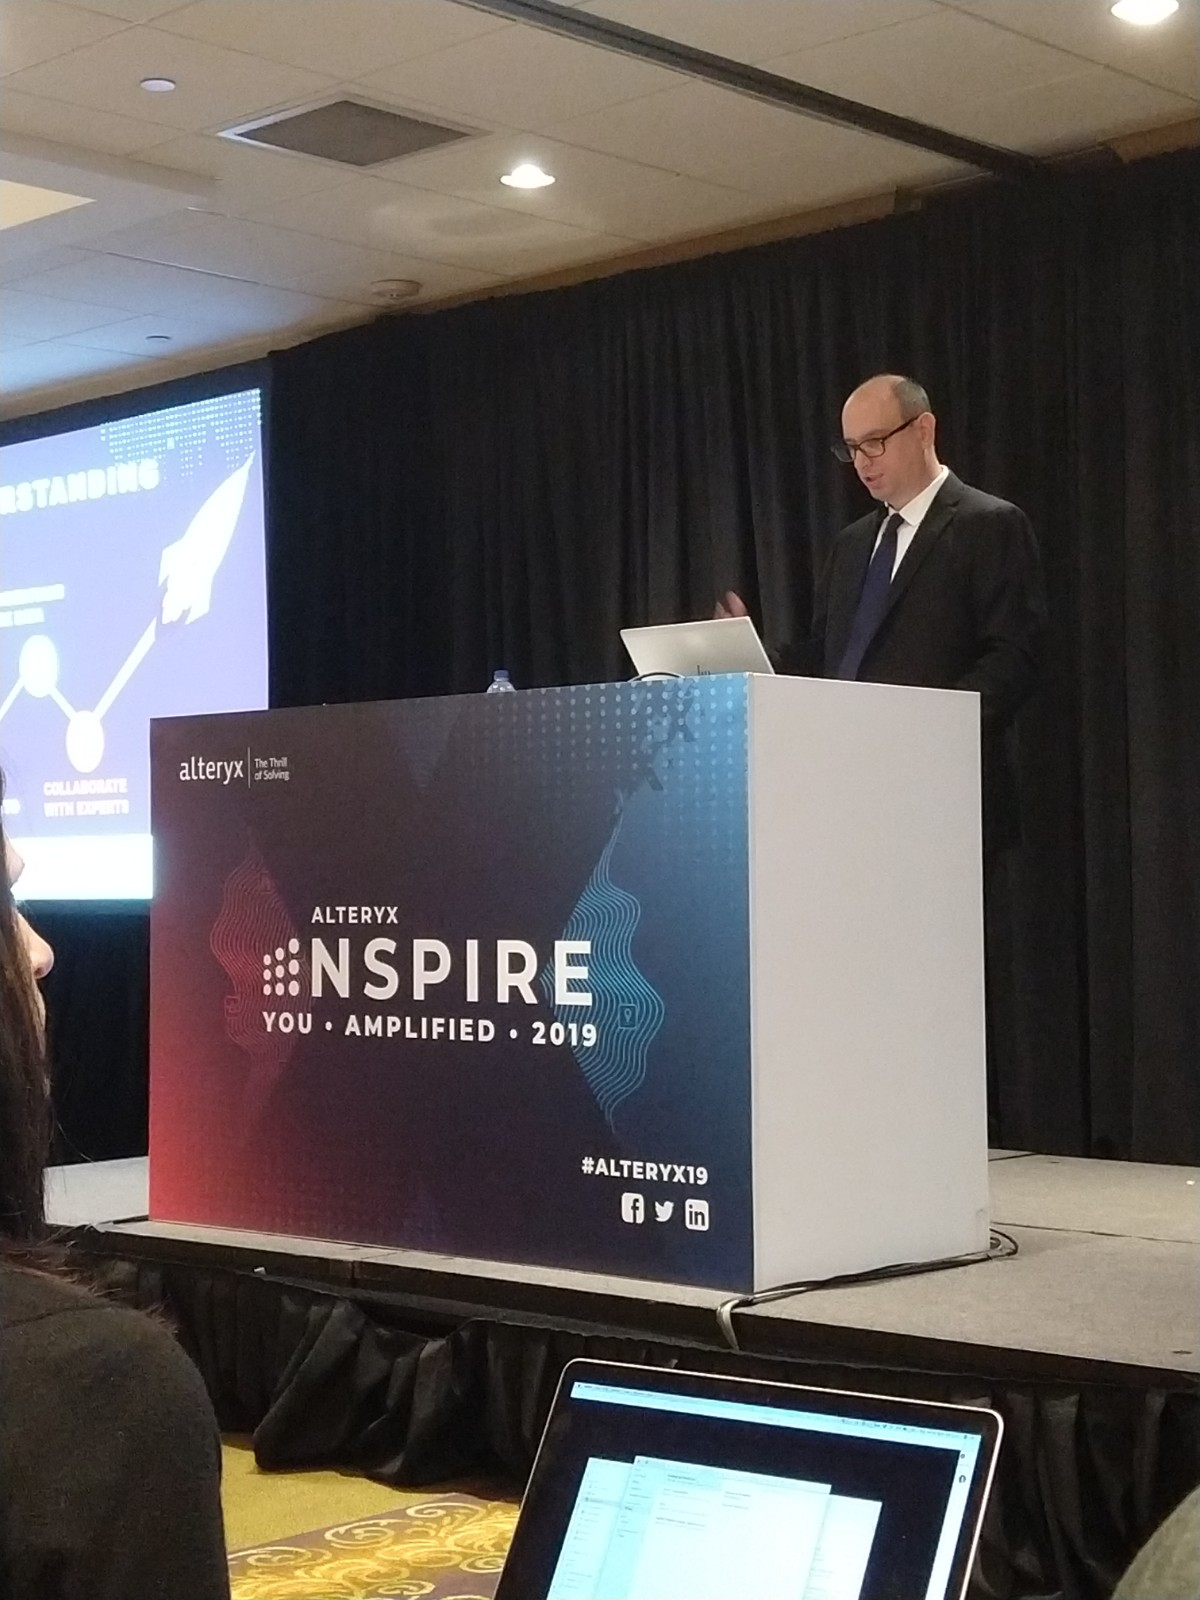 Man speaking on stage with podium during breakout session of the Alteryx Inspire Conference 2019